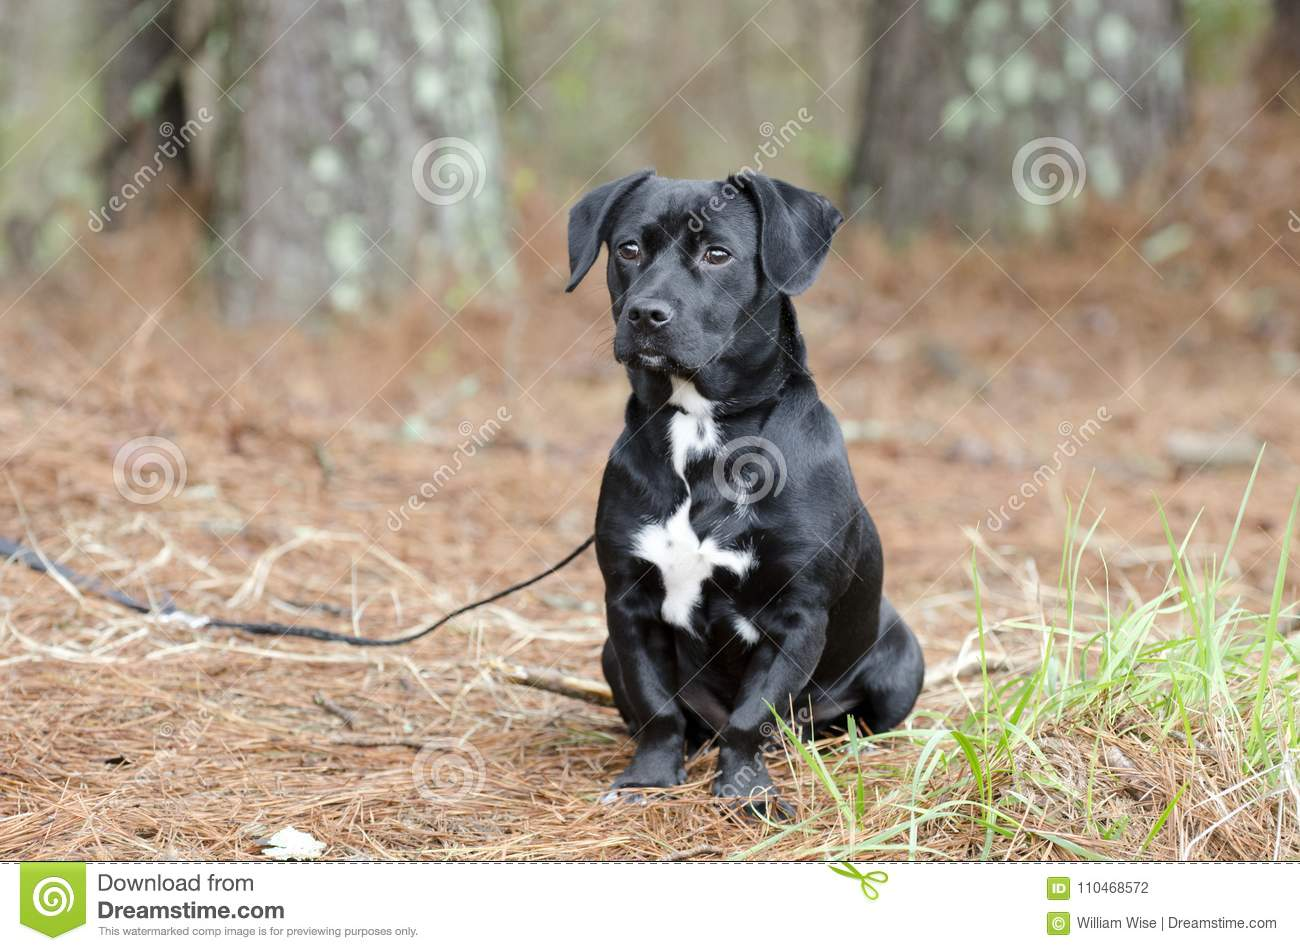 Cute Black Beagle Dachshund Mixed Breed Puppy Dog Mutt Stock Photo